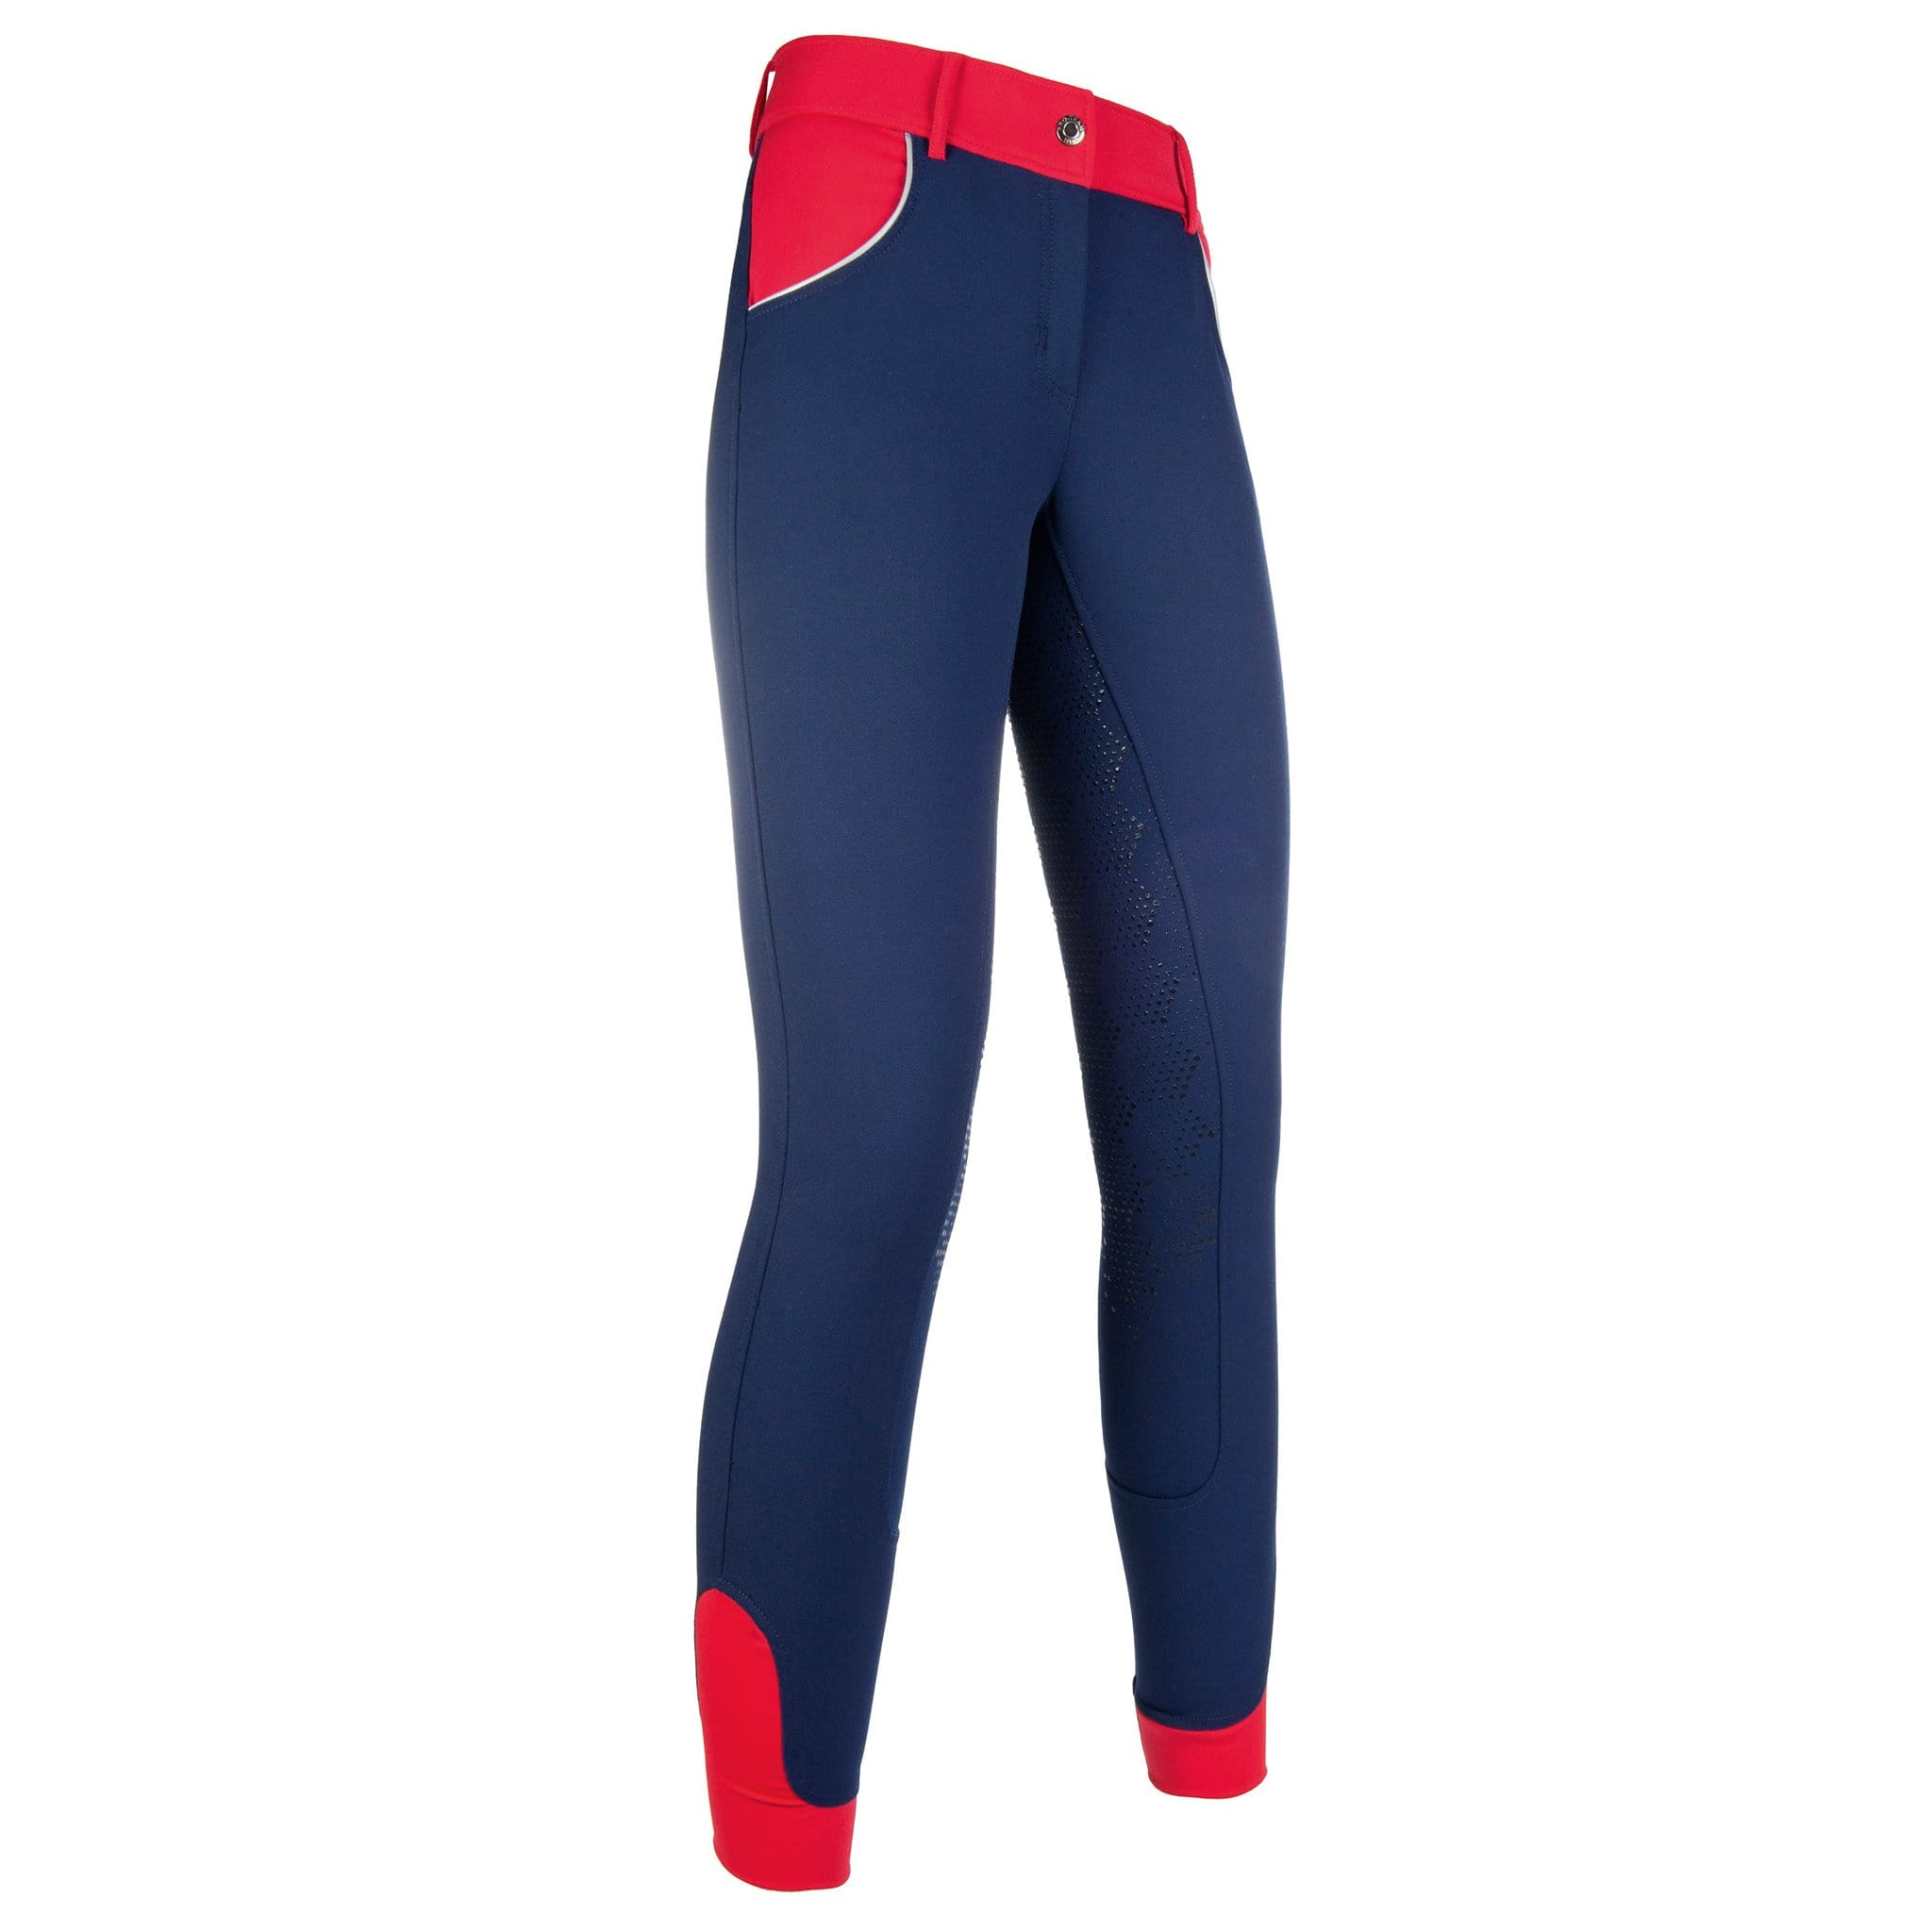 HKM Pro Team Hickstead 3/4 Silicone Seat Riding Breeches Deep Blue and Red Studio Front View 10160/6932